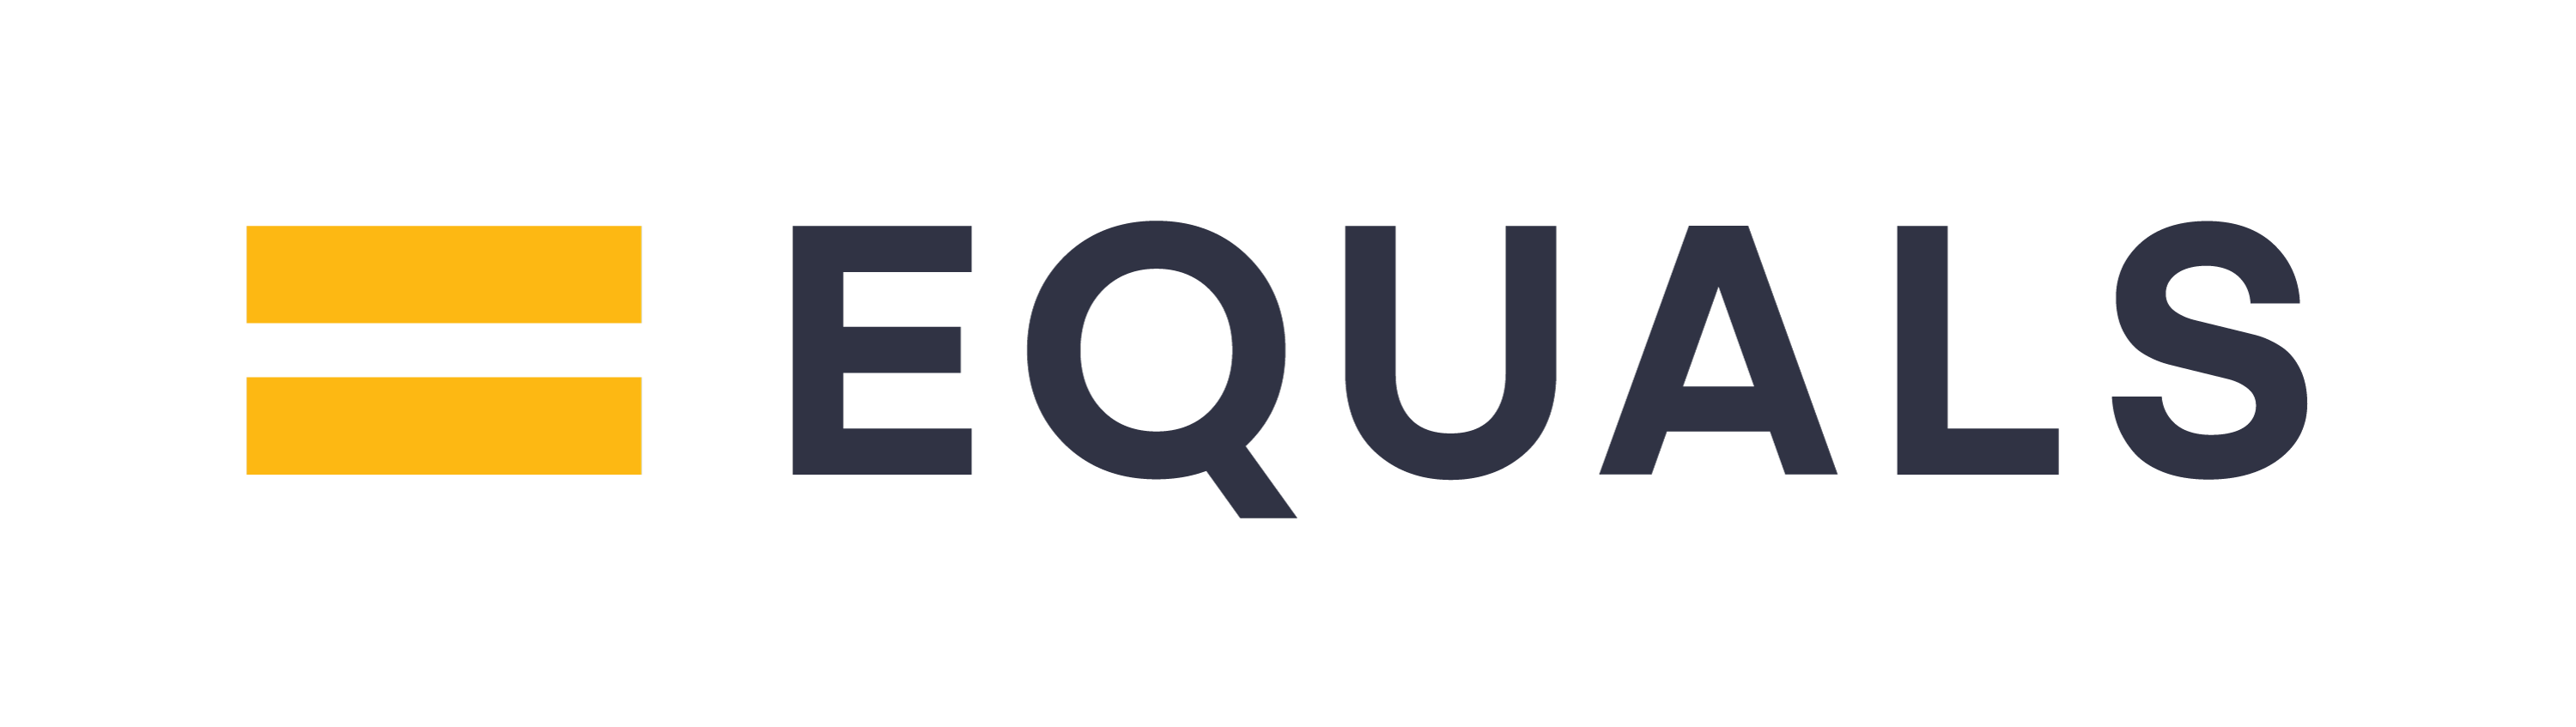 Equals logo